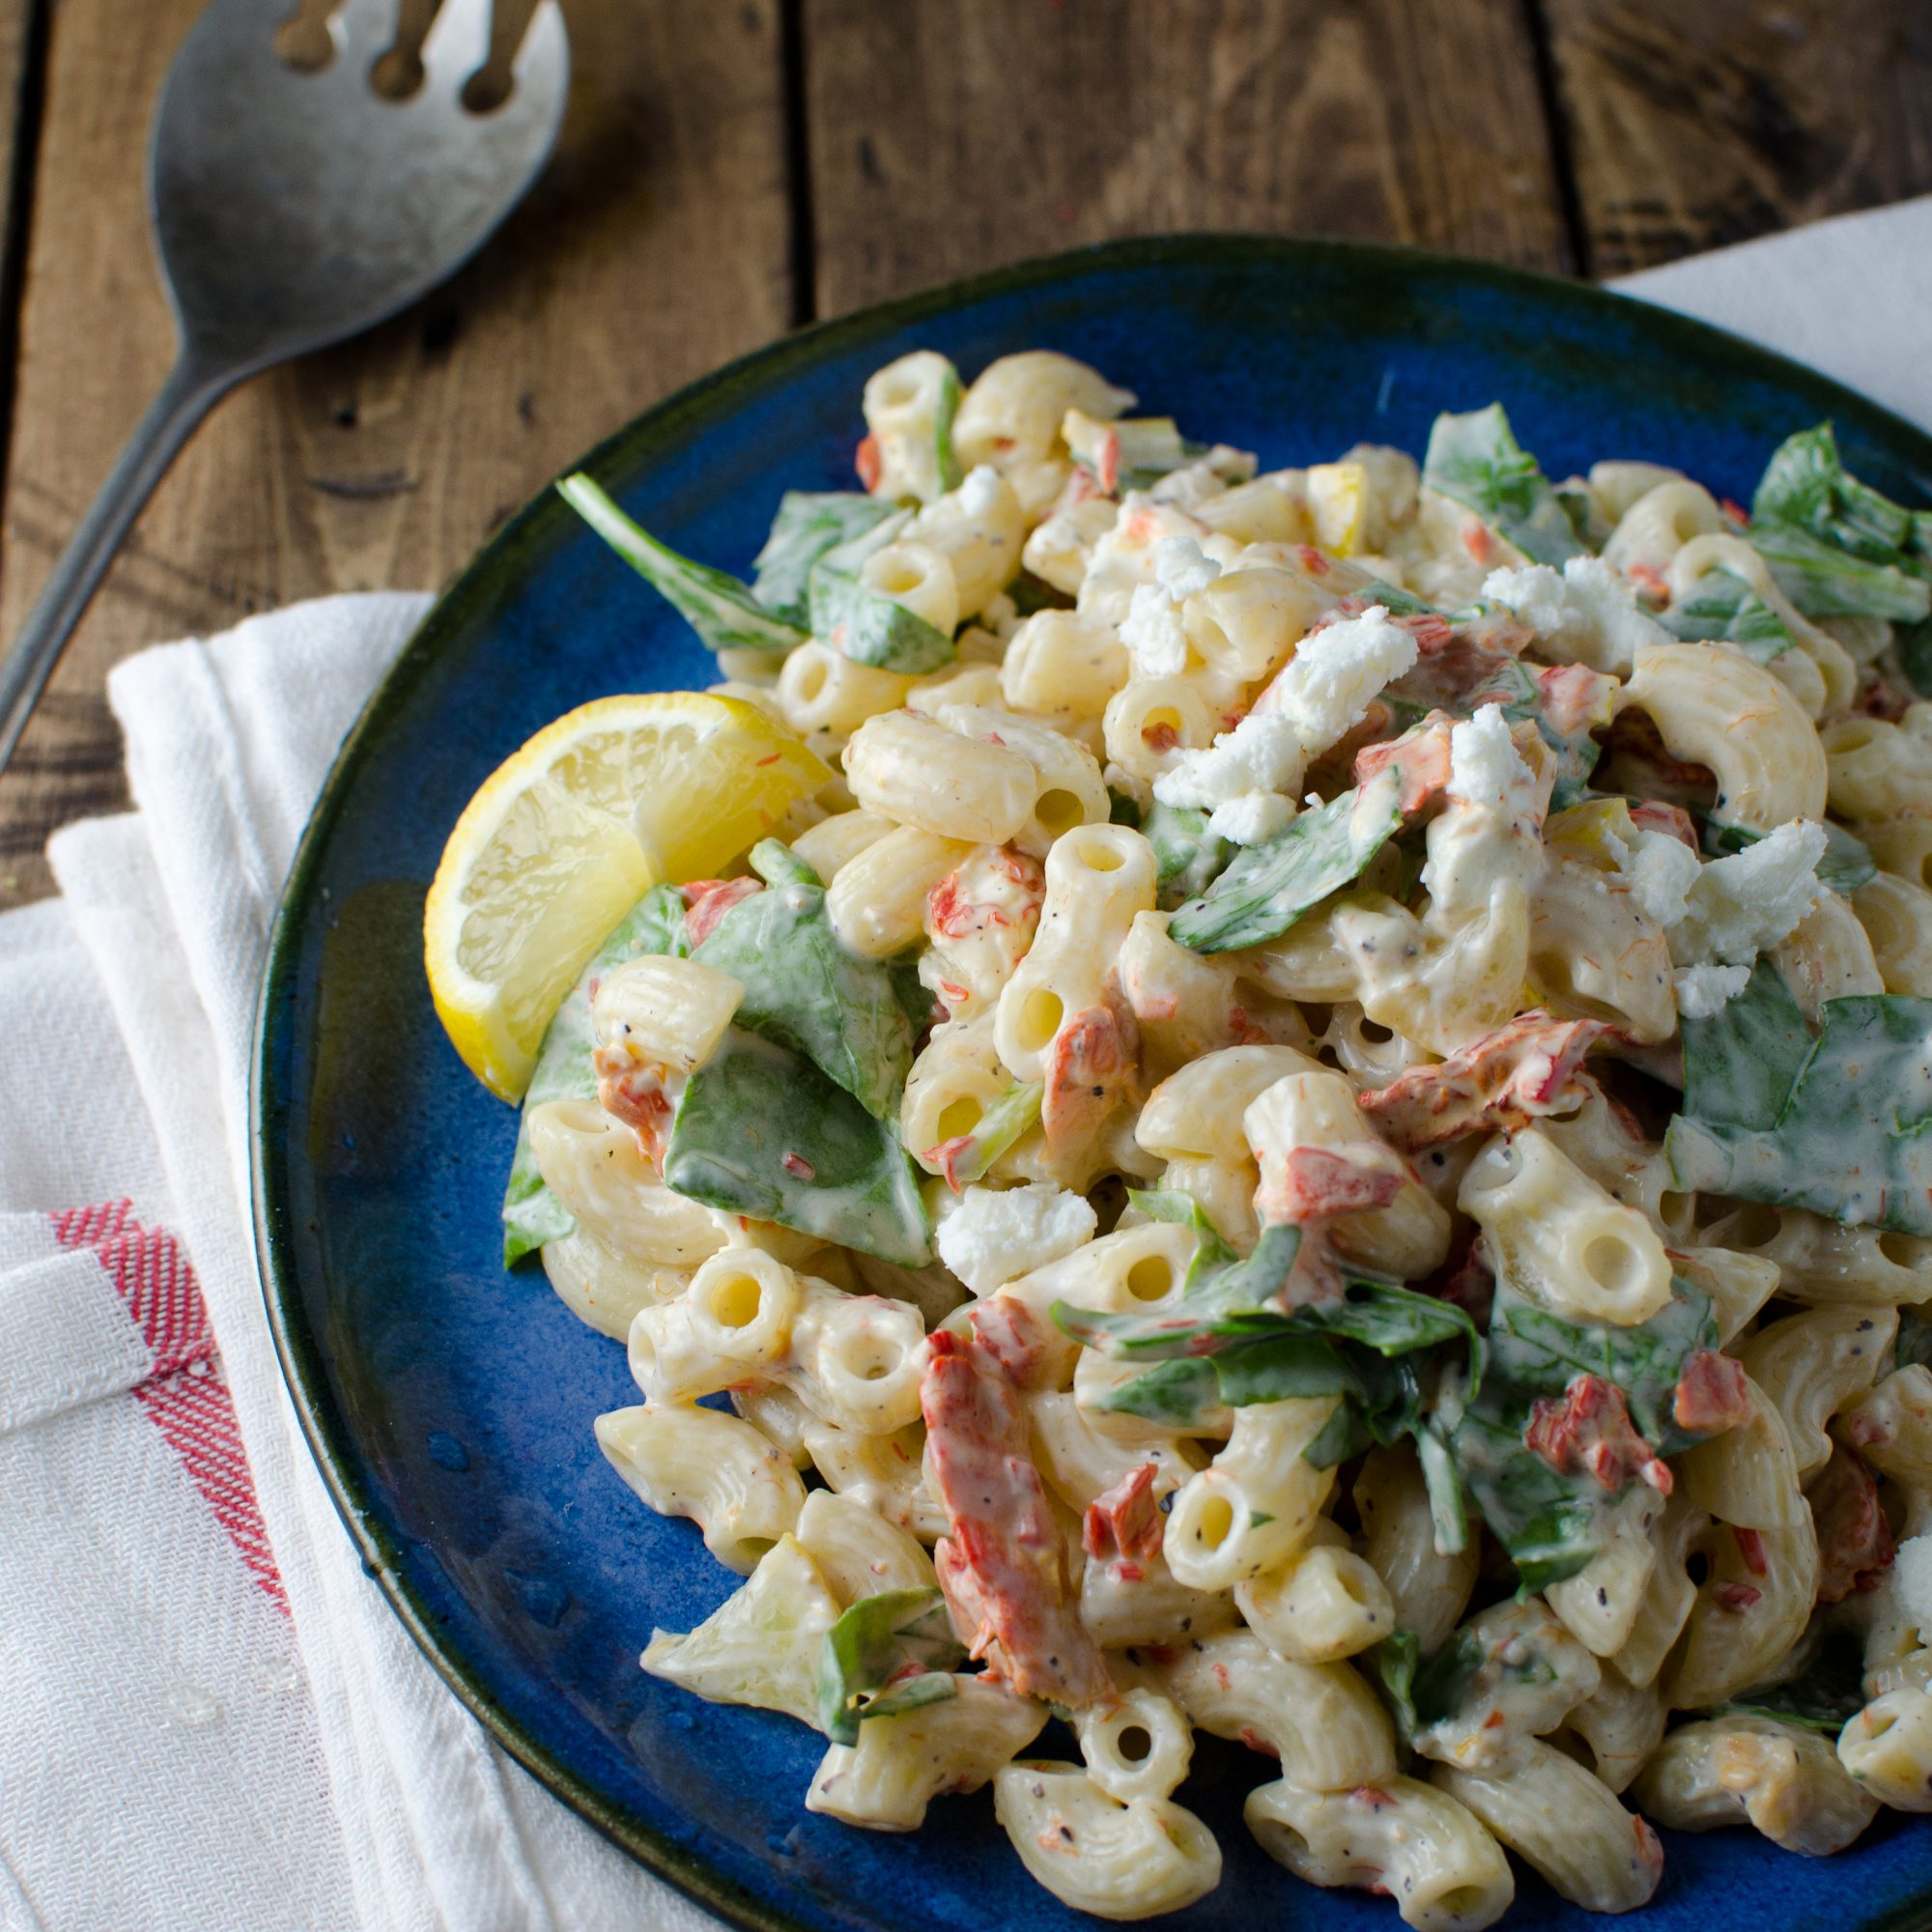 Smoked Salmon Macaroni Salad with Spinach, Lemon and Goat Cheese